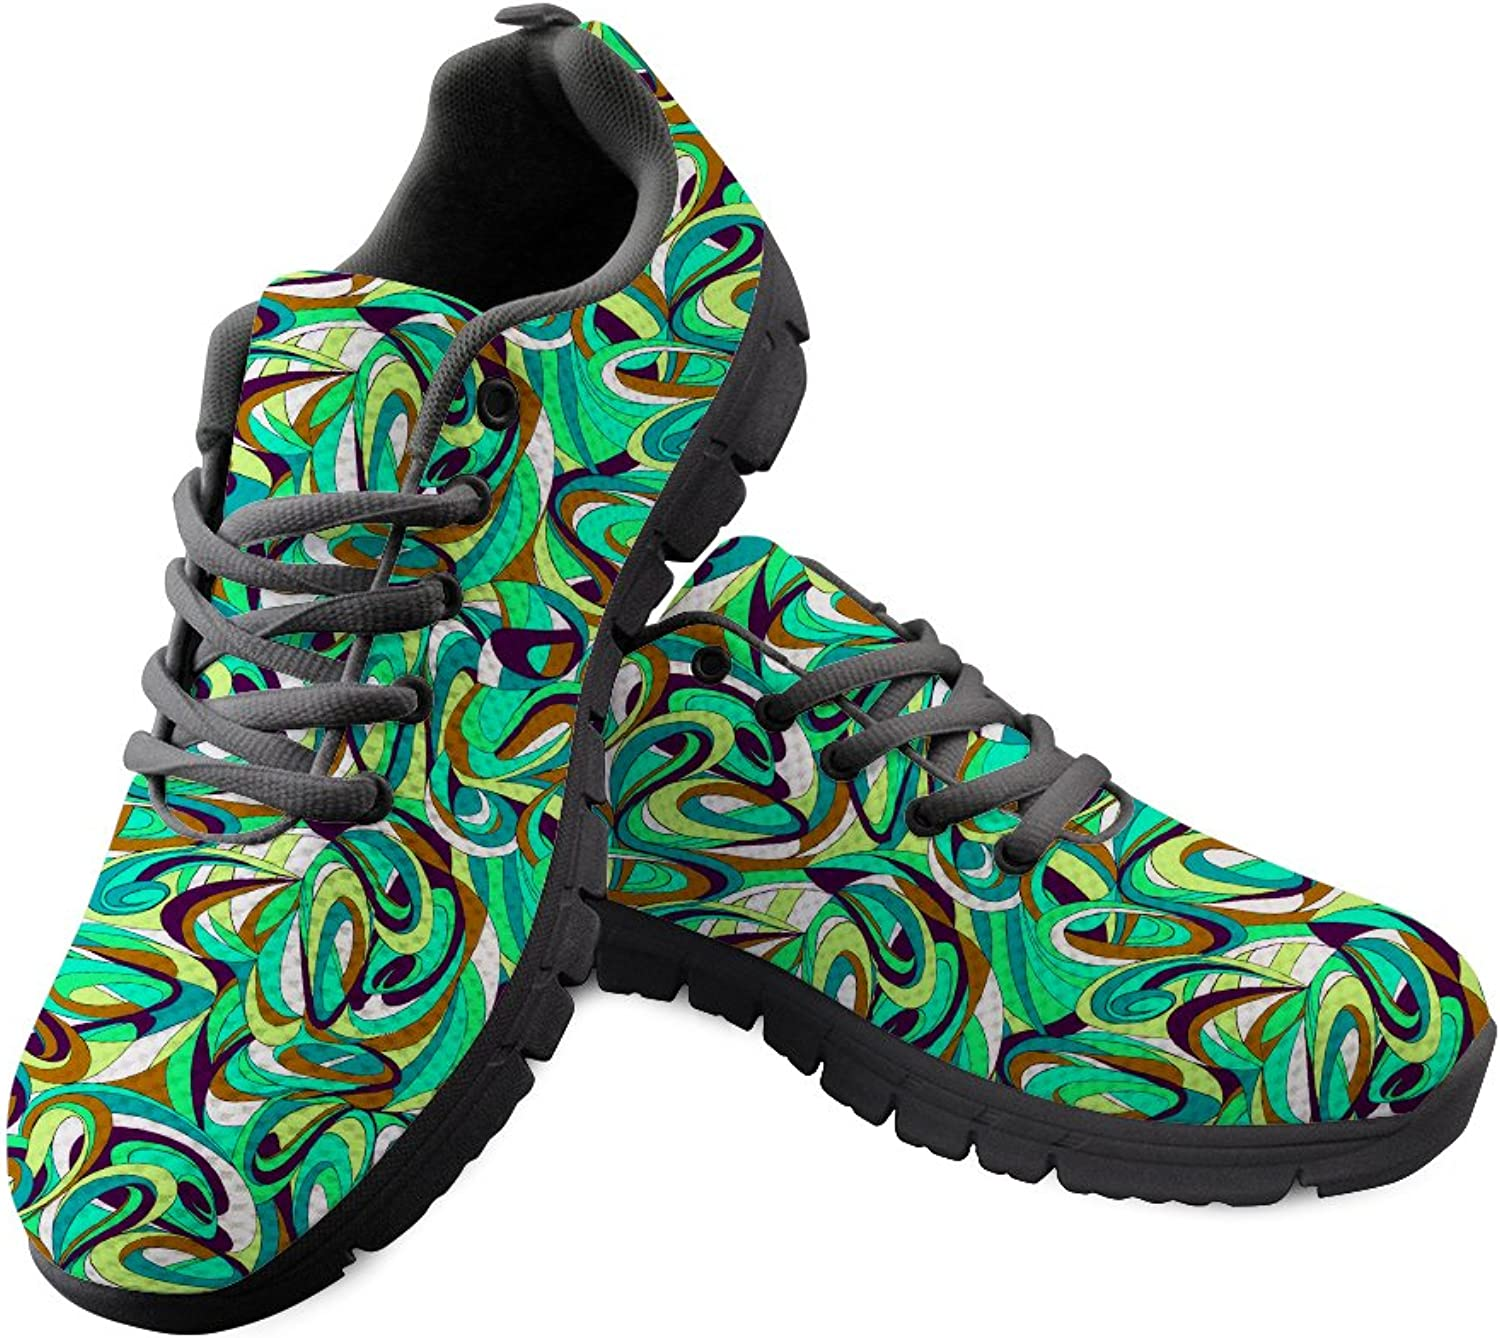 Chaqlin Sports shoes Trainers Athletic Running Sneakers for Girl Boy Green Size 40